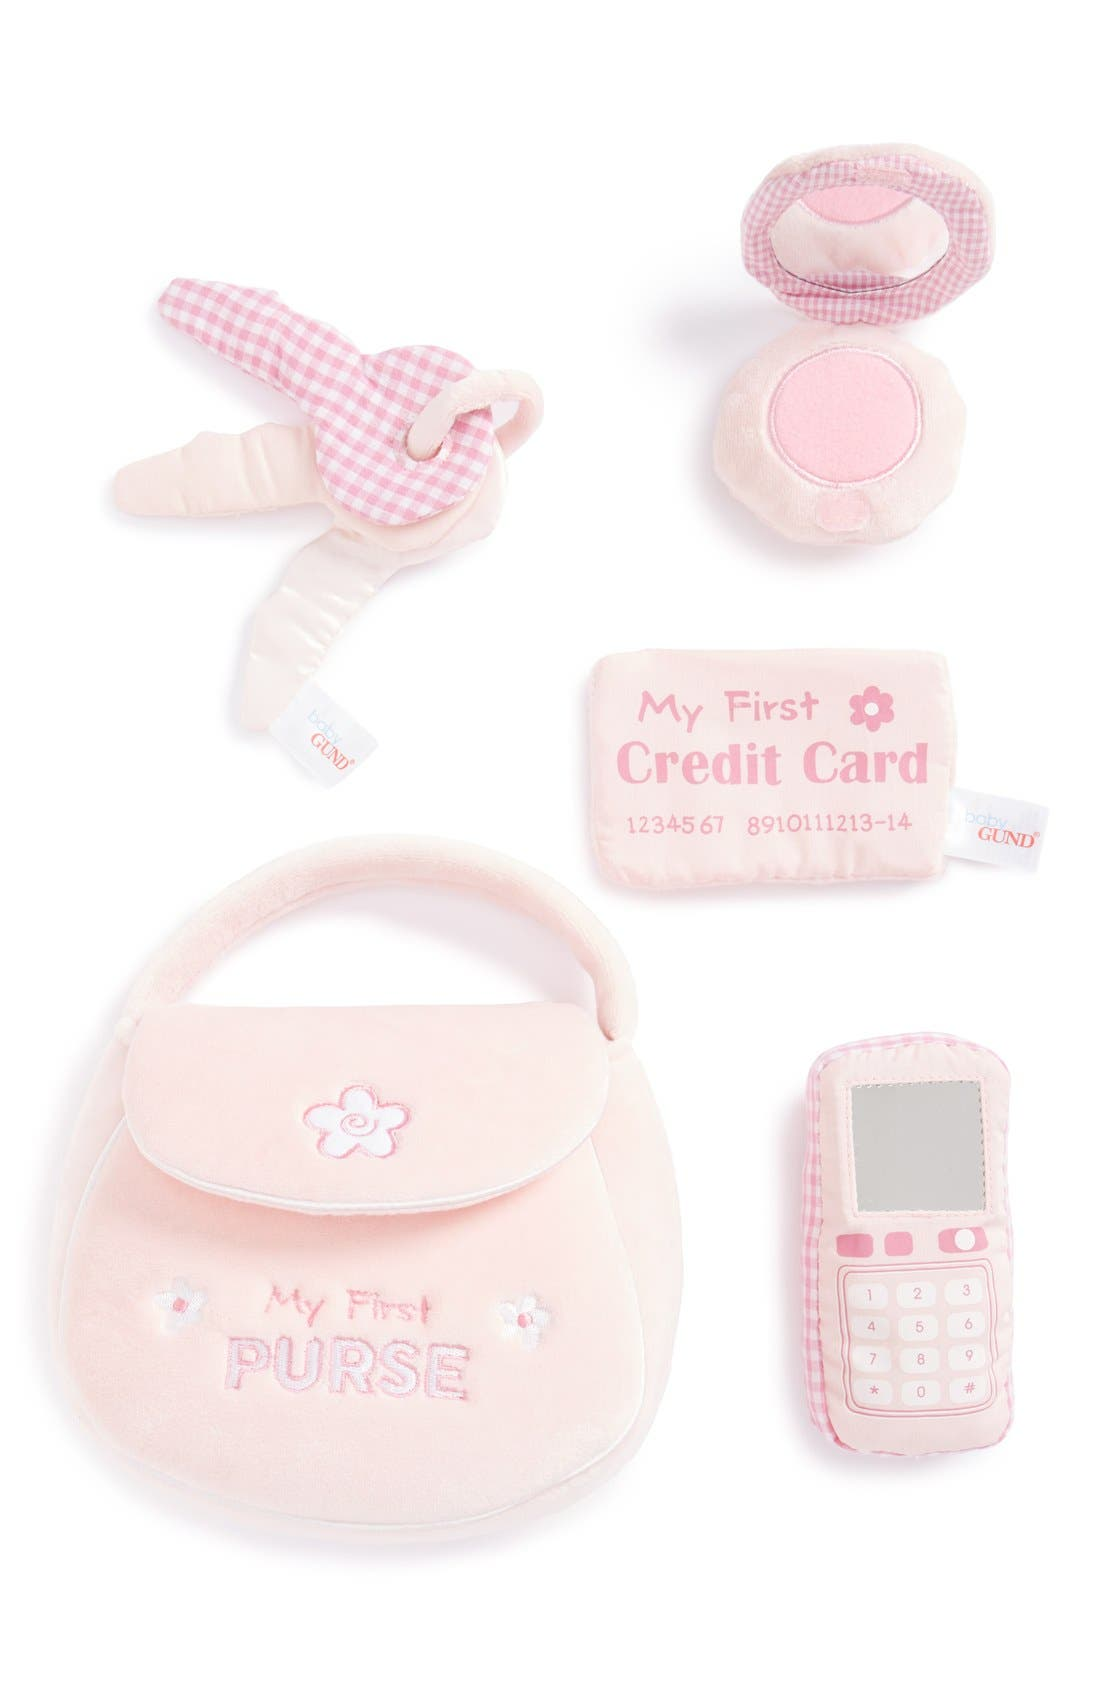 Baby Gund 'My First Purse' Play Set,                             Main thumbnail 1, color,                             Pink